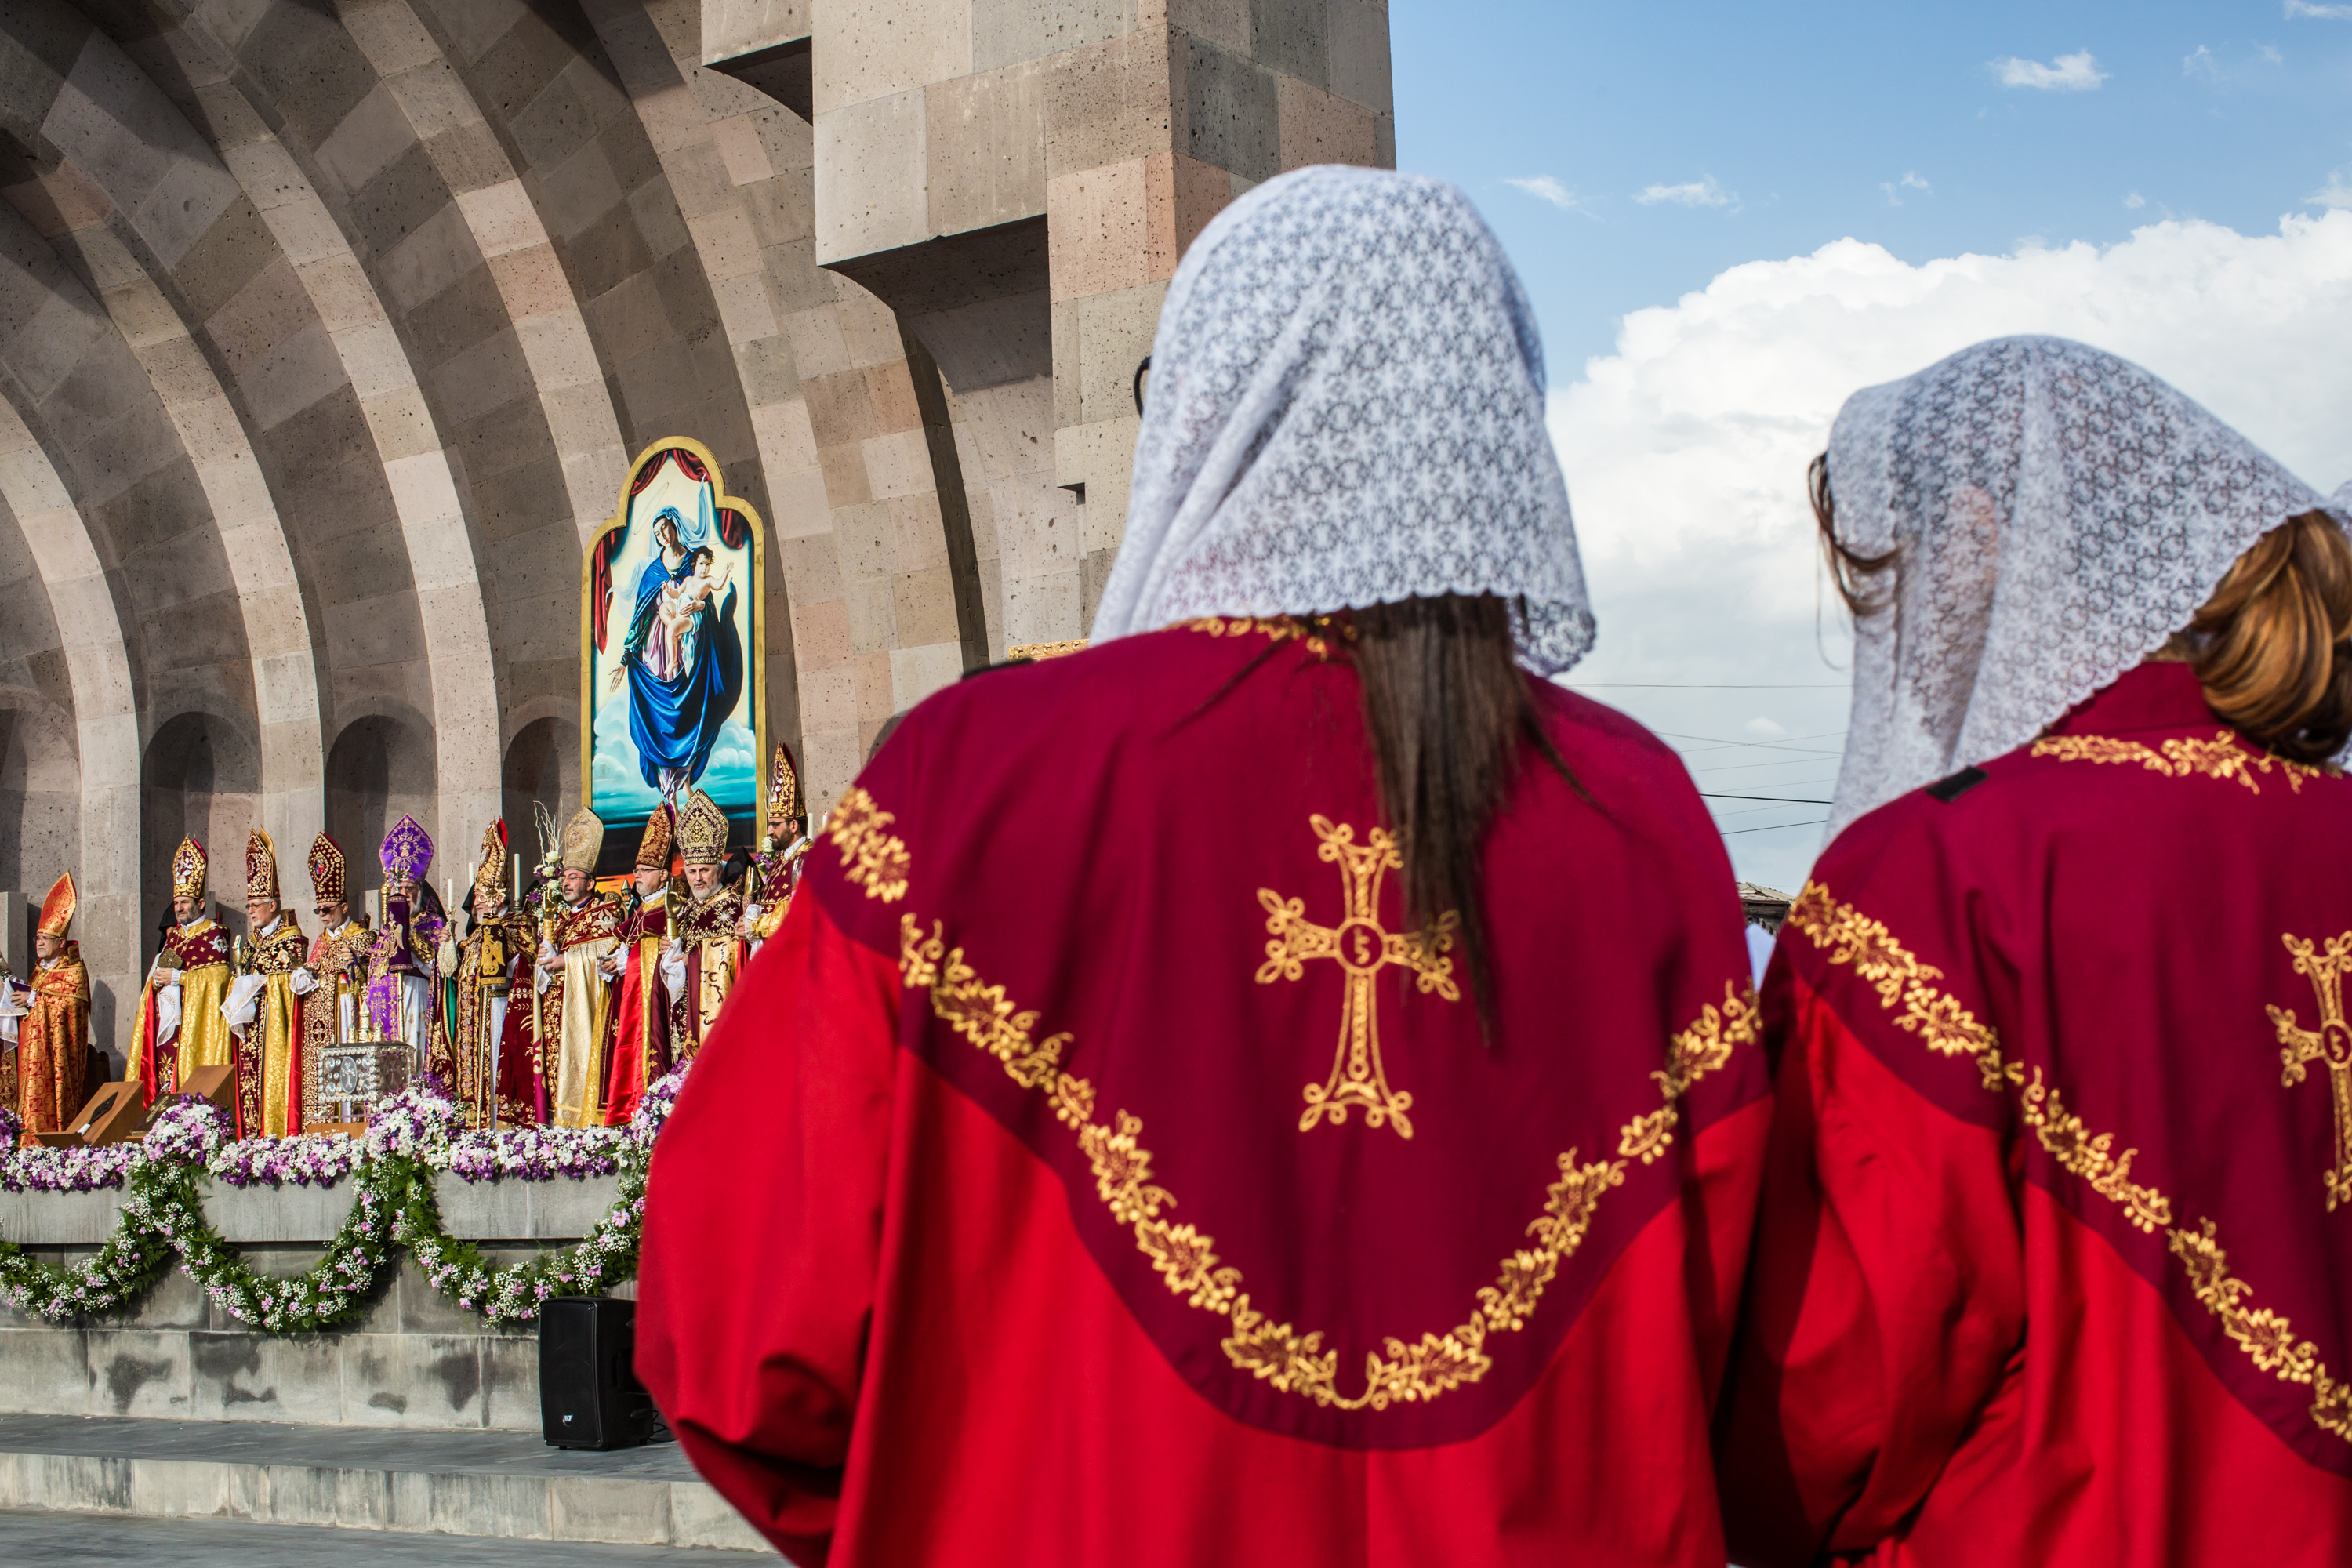 Armenian Apostolic Church leaders conduct a canonization ceremony for victims of the Armenian genocide at the Mother See of Holy Etchmiadzin, a complex that serves as the administrative headquarters of the Armenian Apostolic Church, as members of a choir watch on Thursday in Vagharshapat, Armenia. Photo by Brendan Hoffman/Getty Images